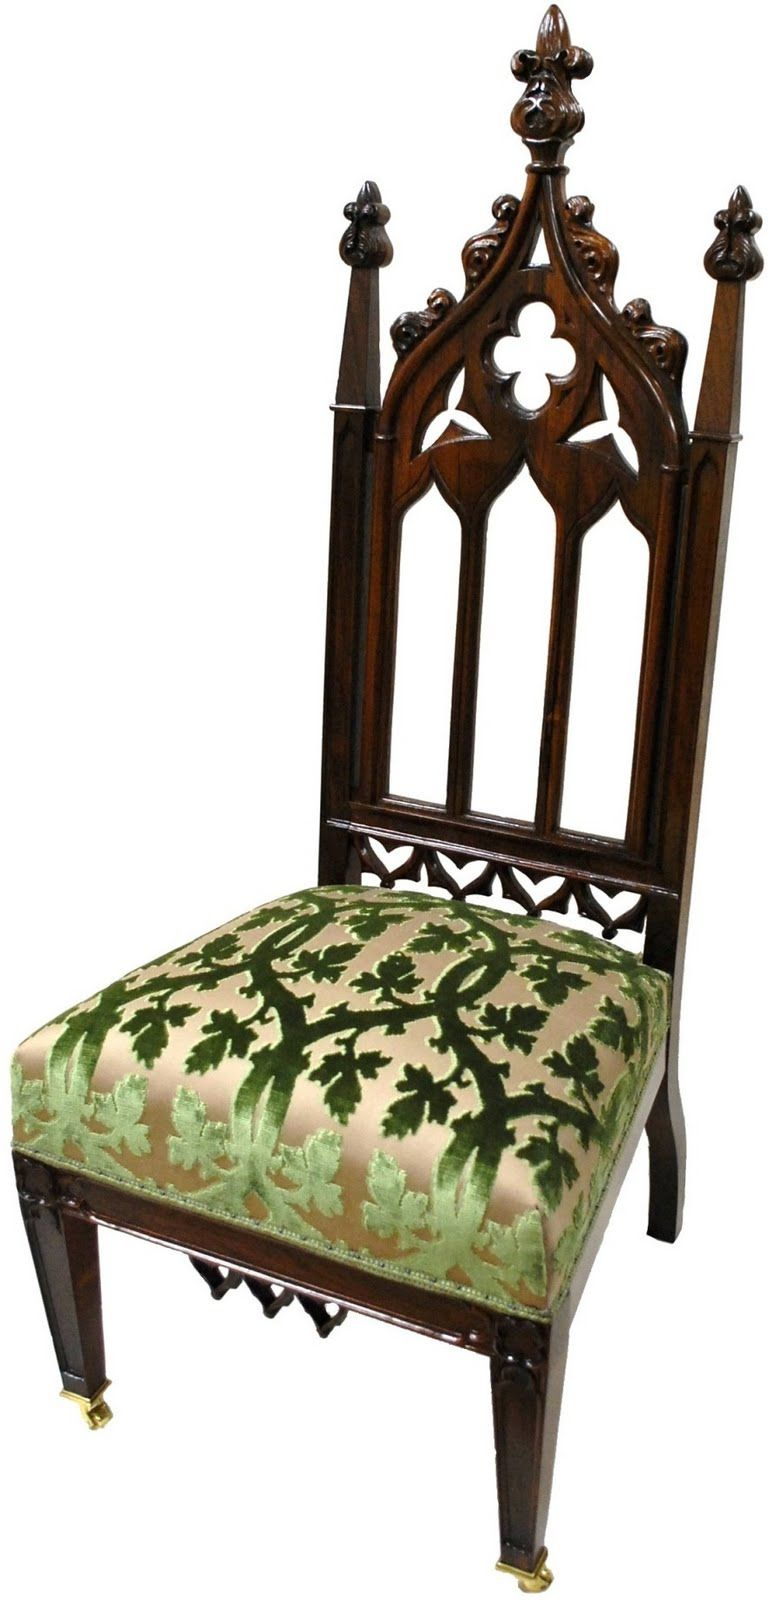 Gothic furniture chair - Chapter 6 Furniture Gothic Revival Chair With Characteristic Pointed Arch And Oak Leaf Finial